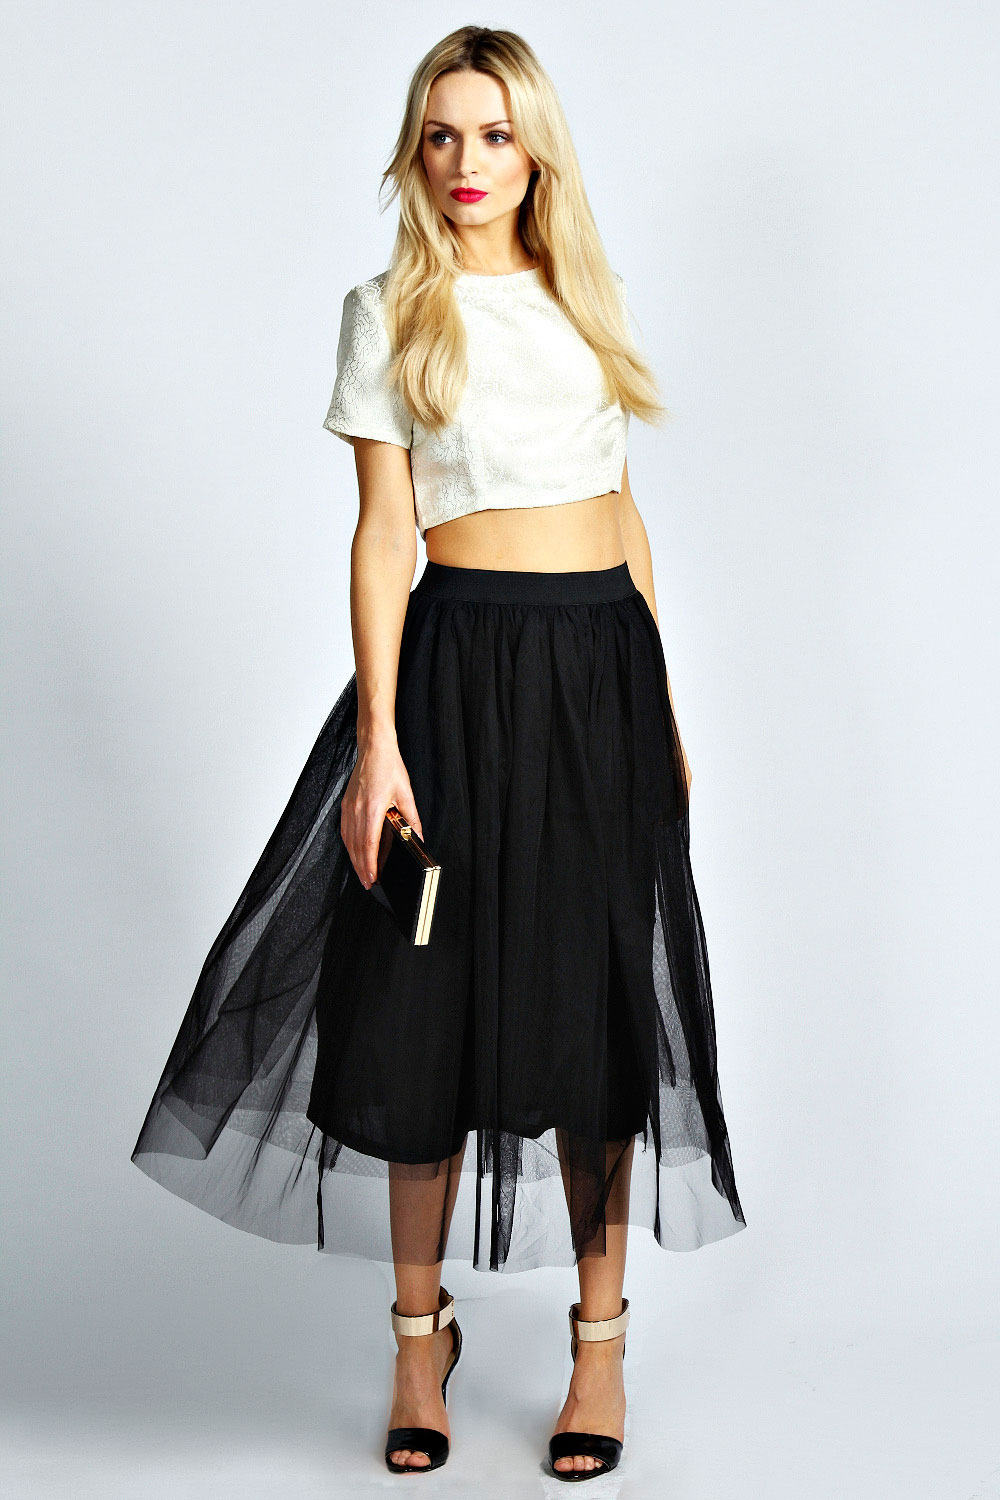 FREE Shipping & FREE Returns on Women's Skirts: A Line, Full, Midi, Maxi & More. Shop now! Pick Up in Store Available.